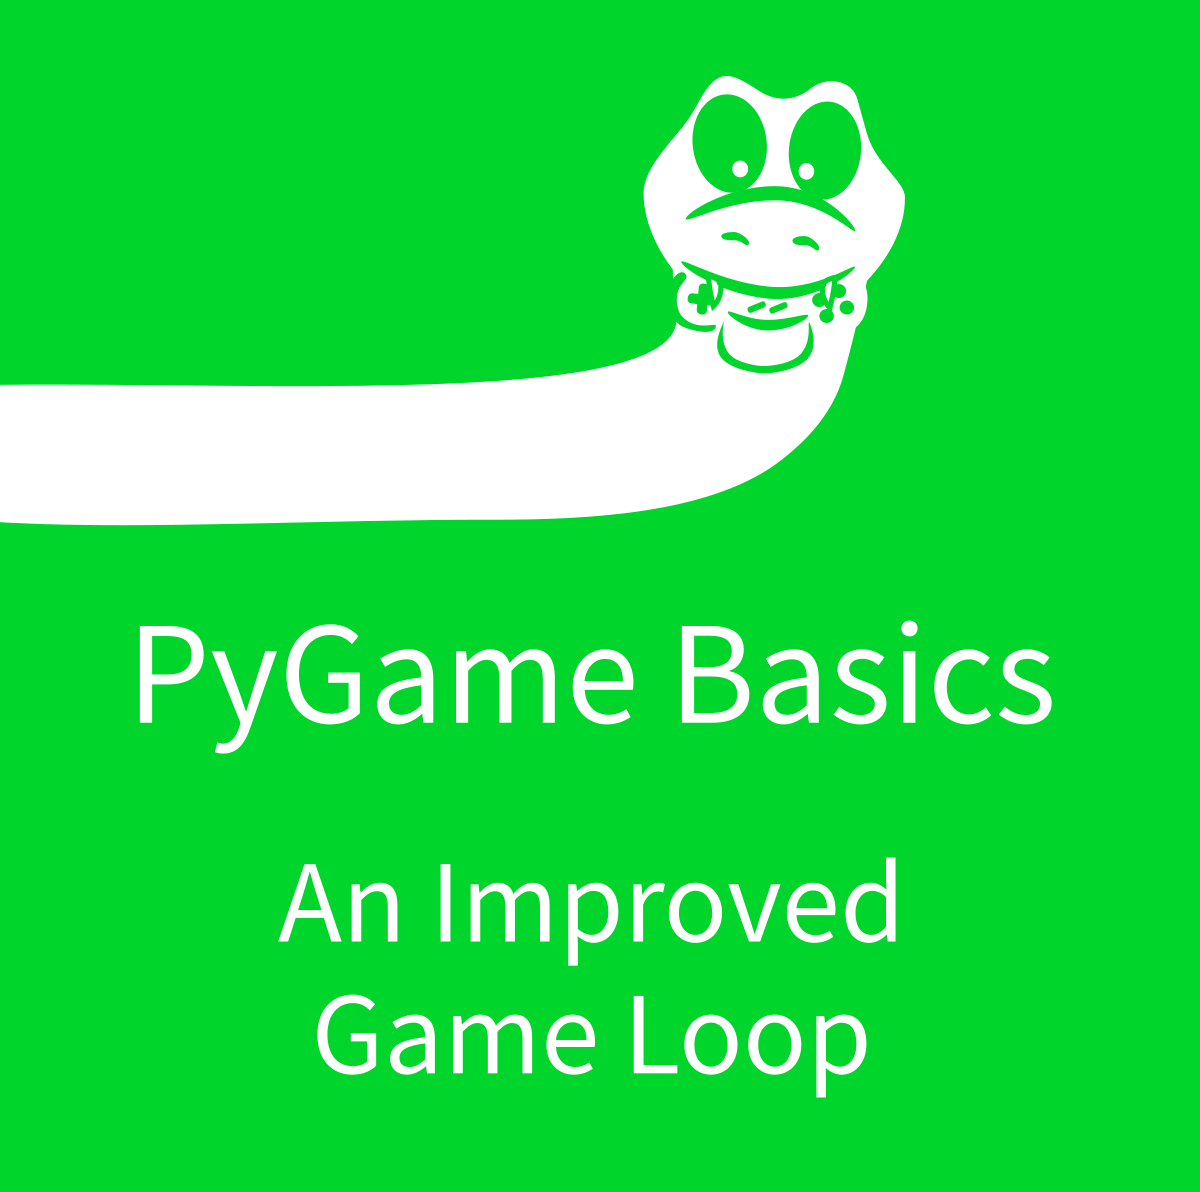 PyGame Basics: An Improved Game Loop